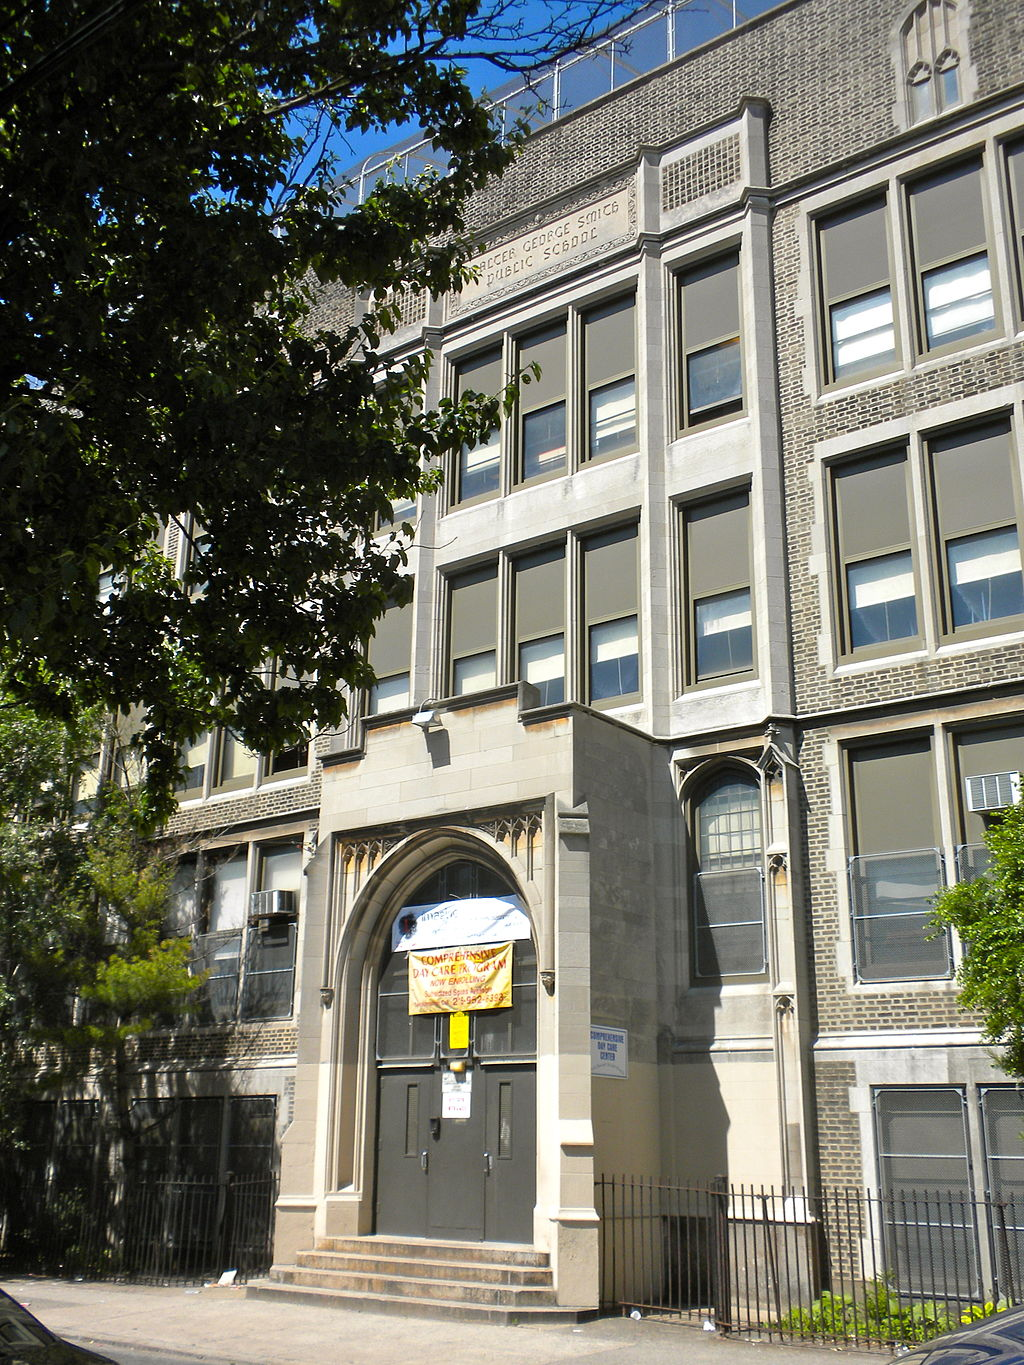 Walter Smith School | Wikimedia Commons